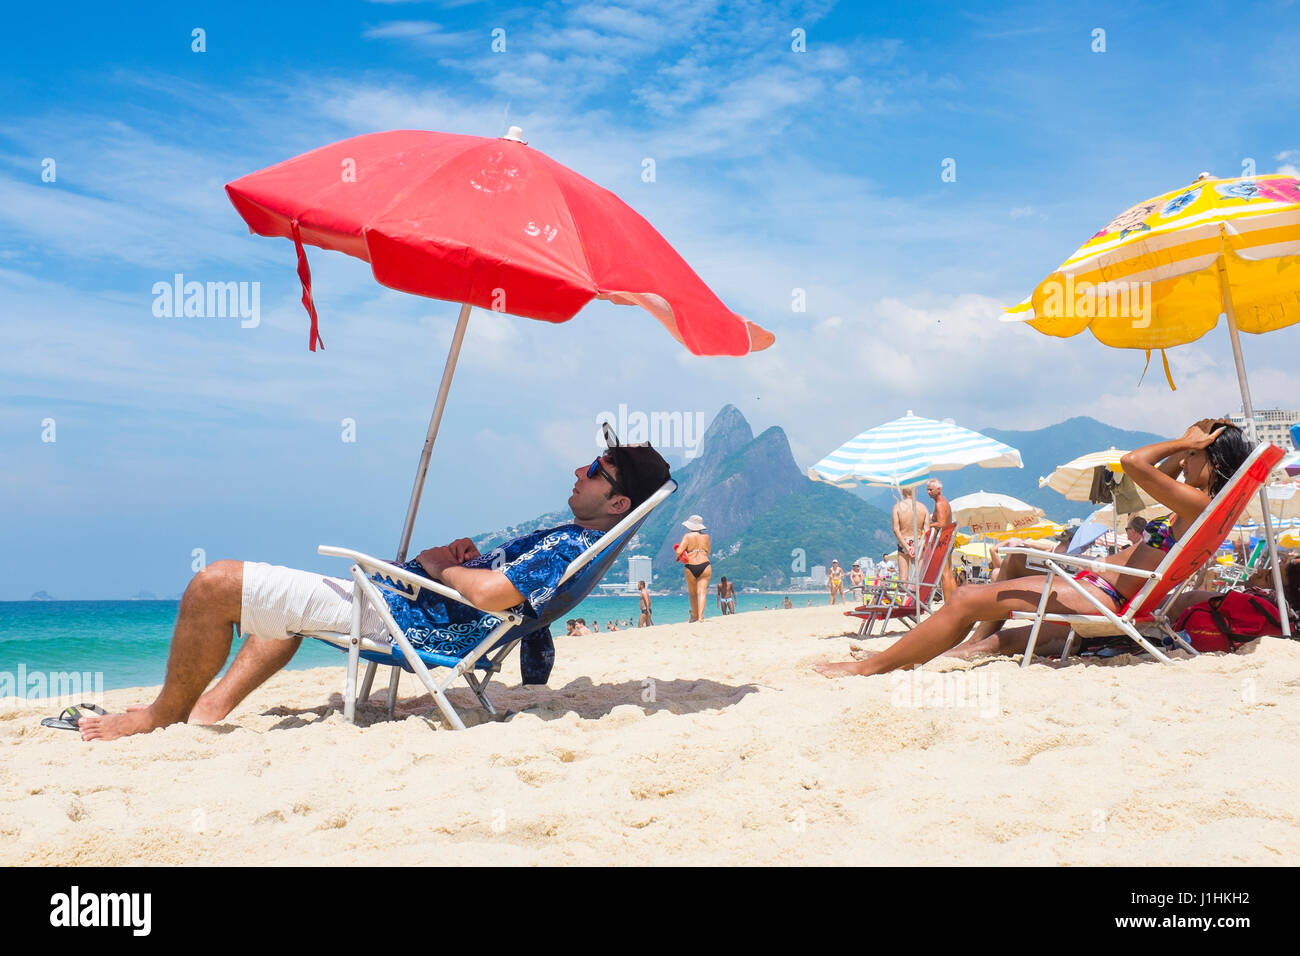 RIO DE JANEIRO - JANUARY 22, 2017: Beachgoers relax in the shade of beach umbrellas on a hot summer afternoon in - Stock Image